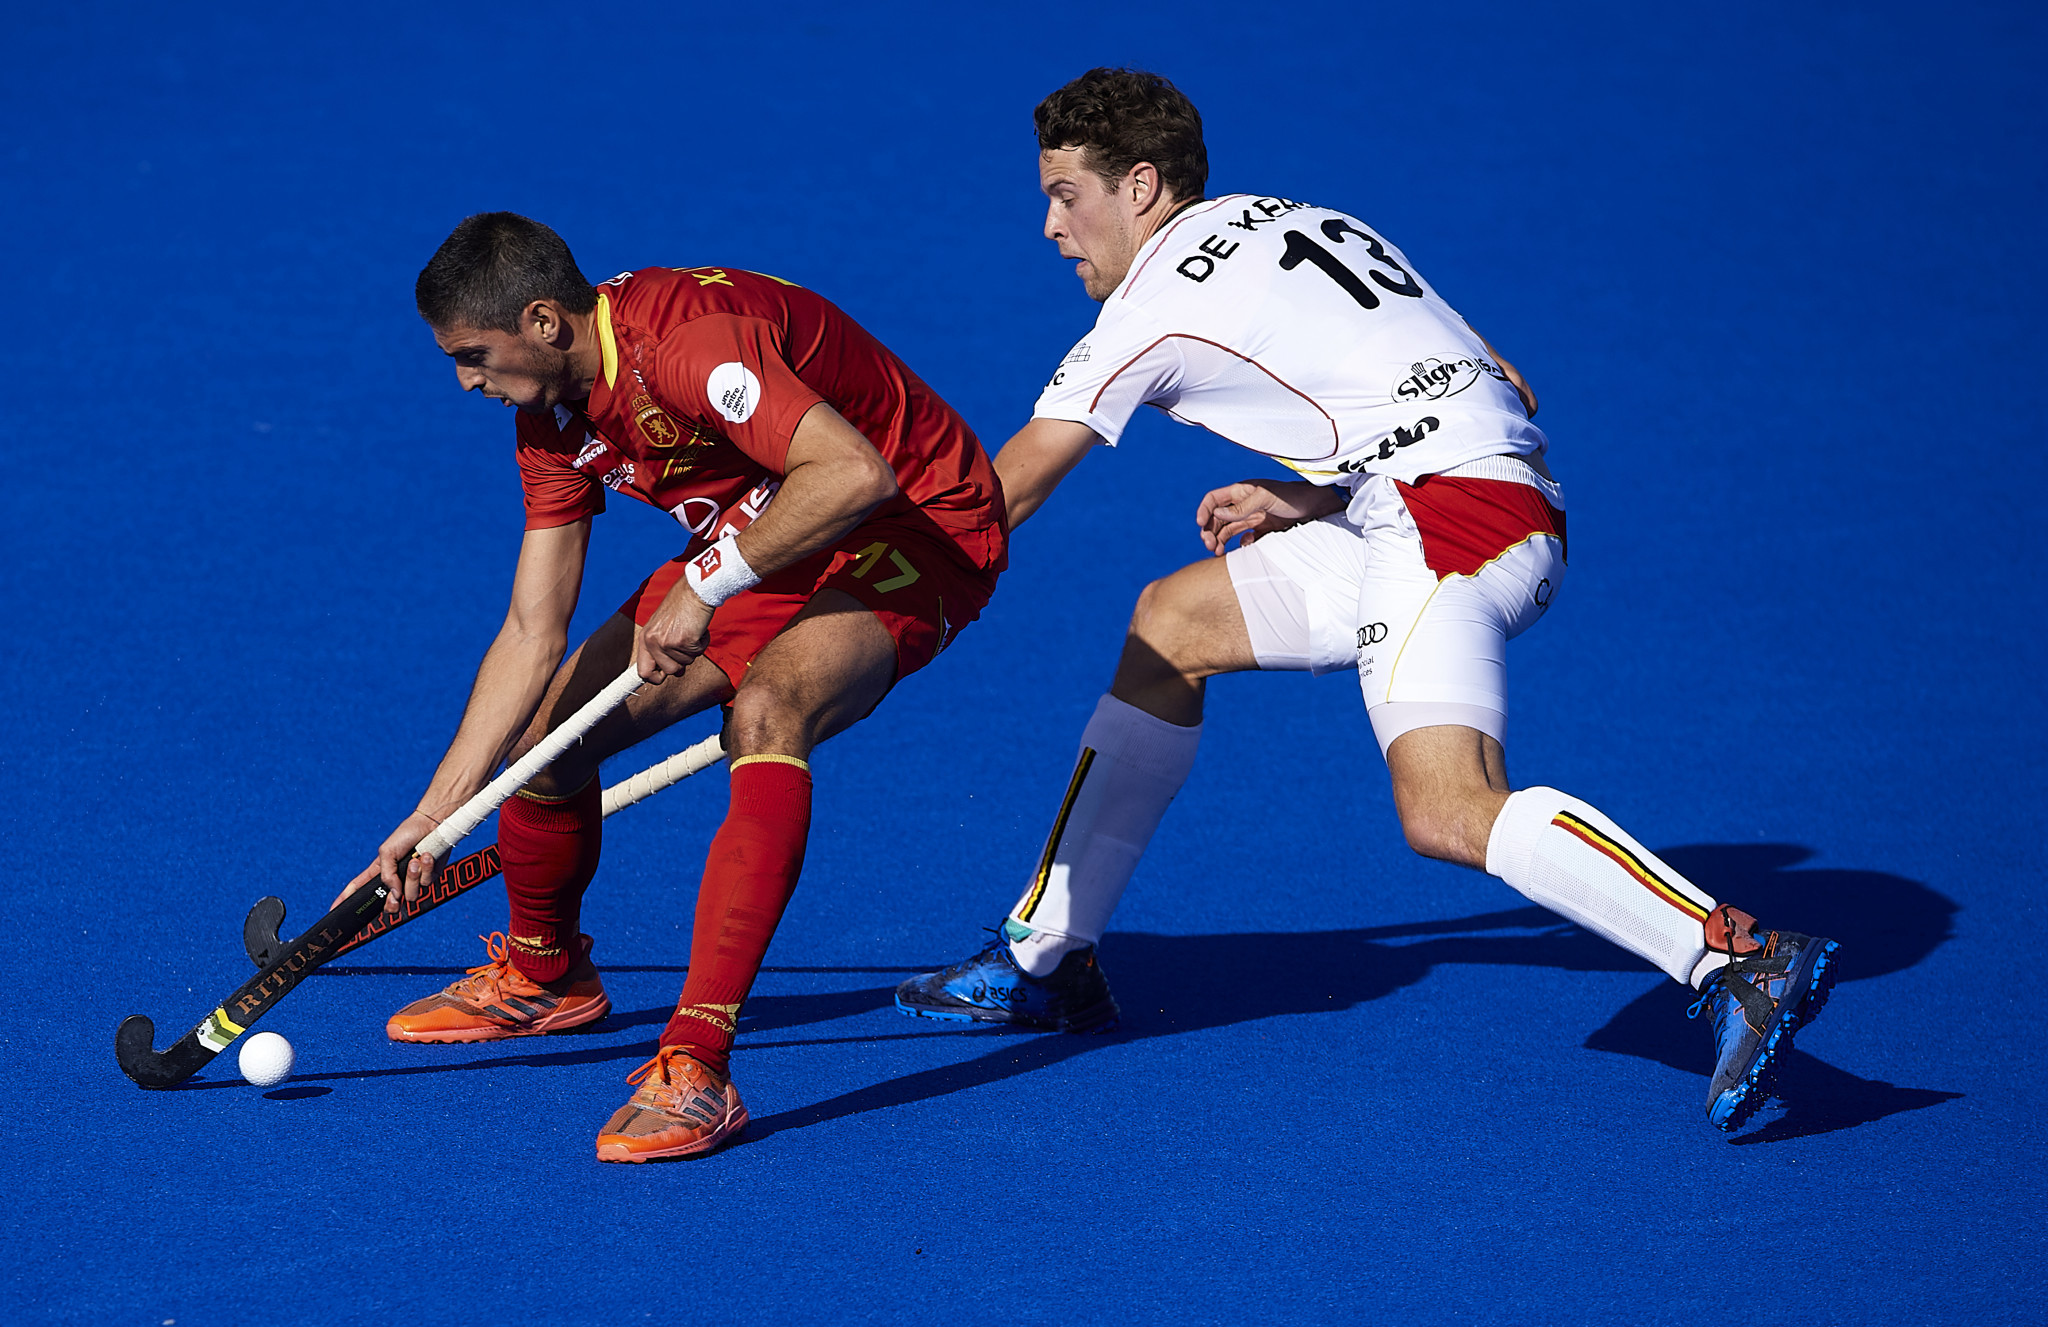 The rights include all FIH Pro League matches, the Tokyo 2020 Olympic qualifiers and the 2022 Hockey World Cups for the territories of Austria, Germany and Switzerland ©Getty Images